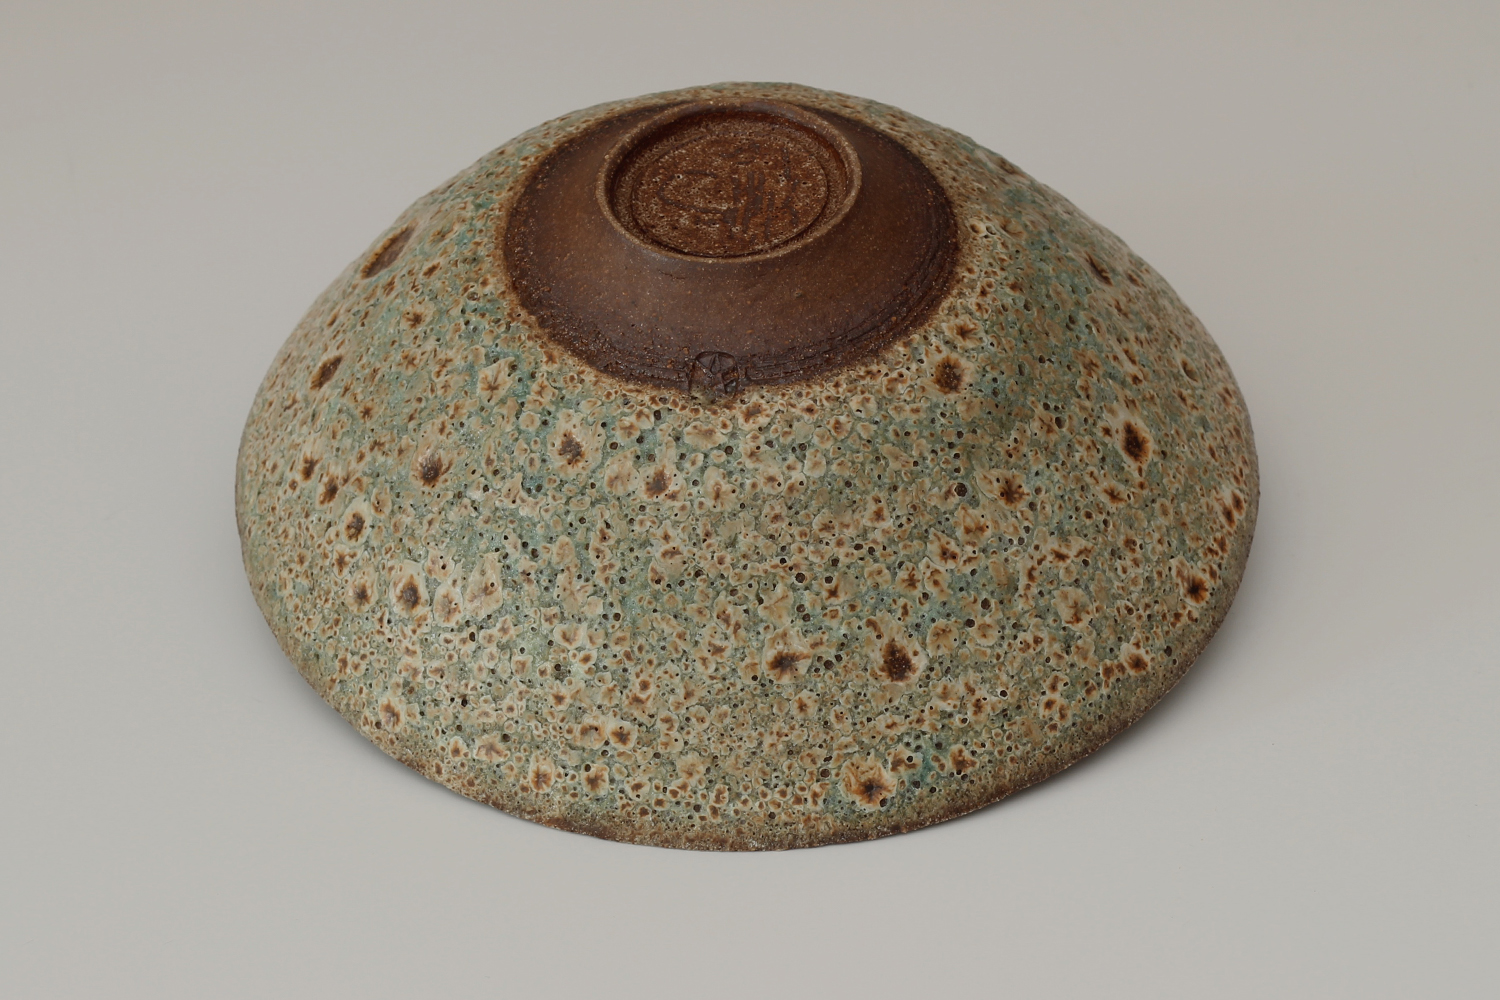 Peter Wills Ceramic Green & Brown Volcanic Stoneware Bowl 180